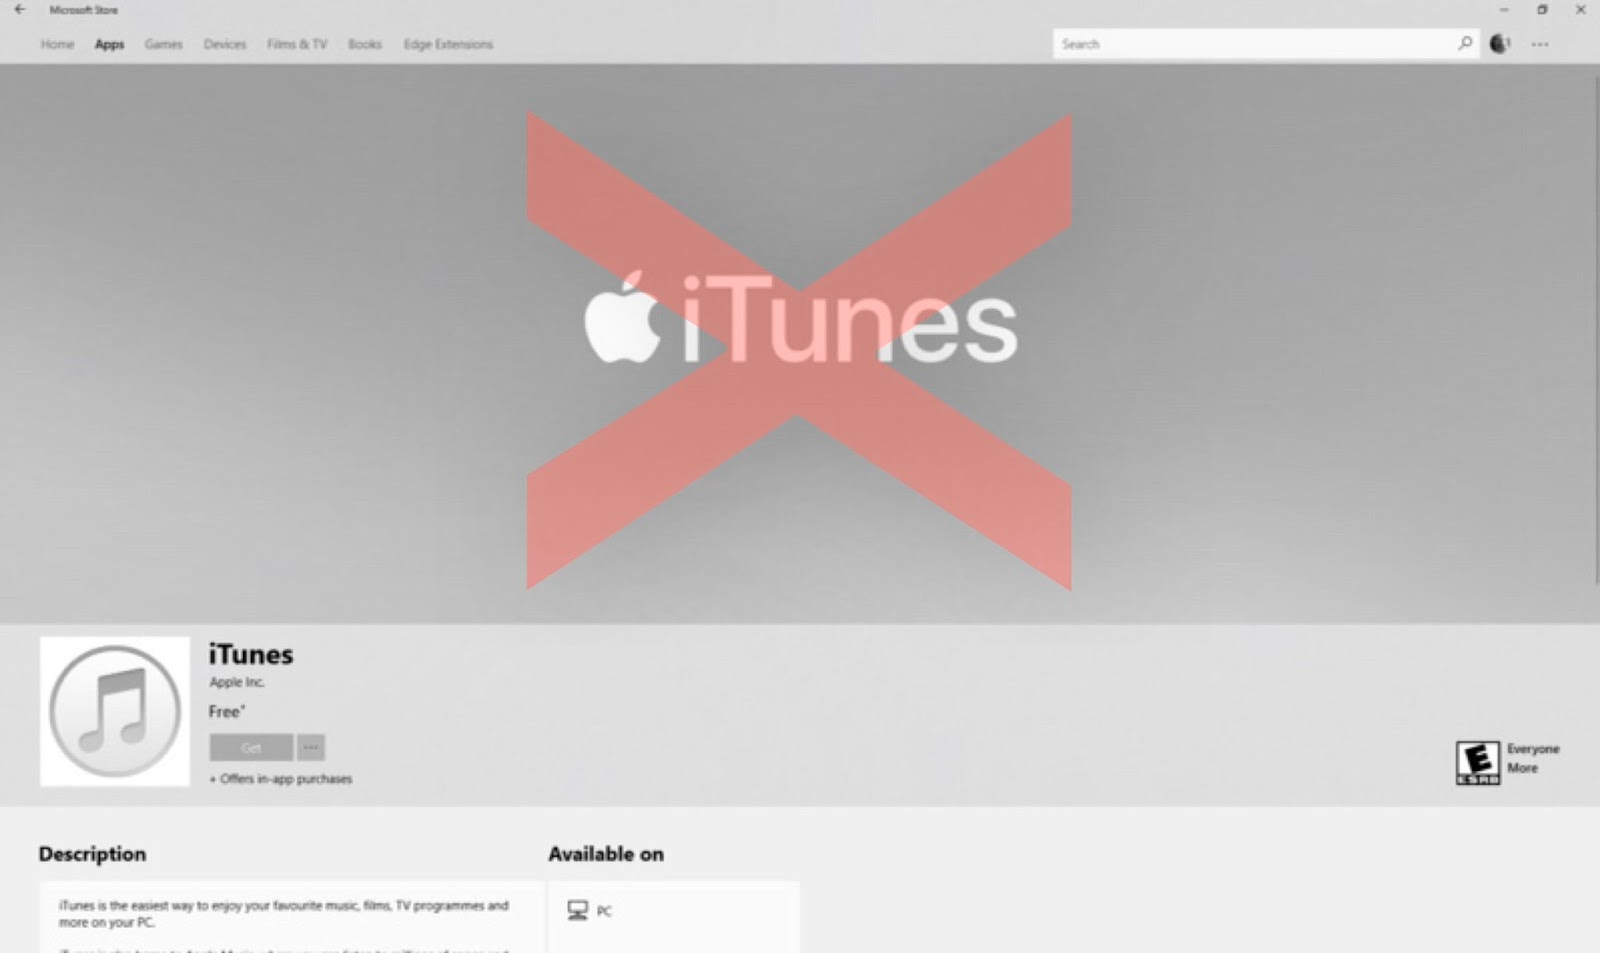 The end of ITunes has come after 20 years of existence